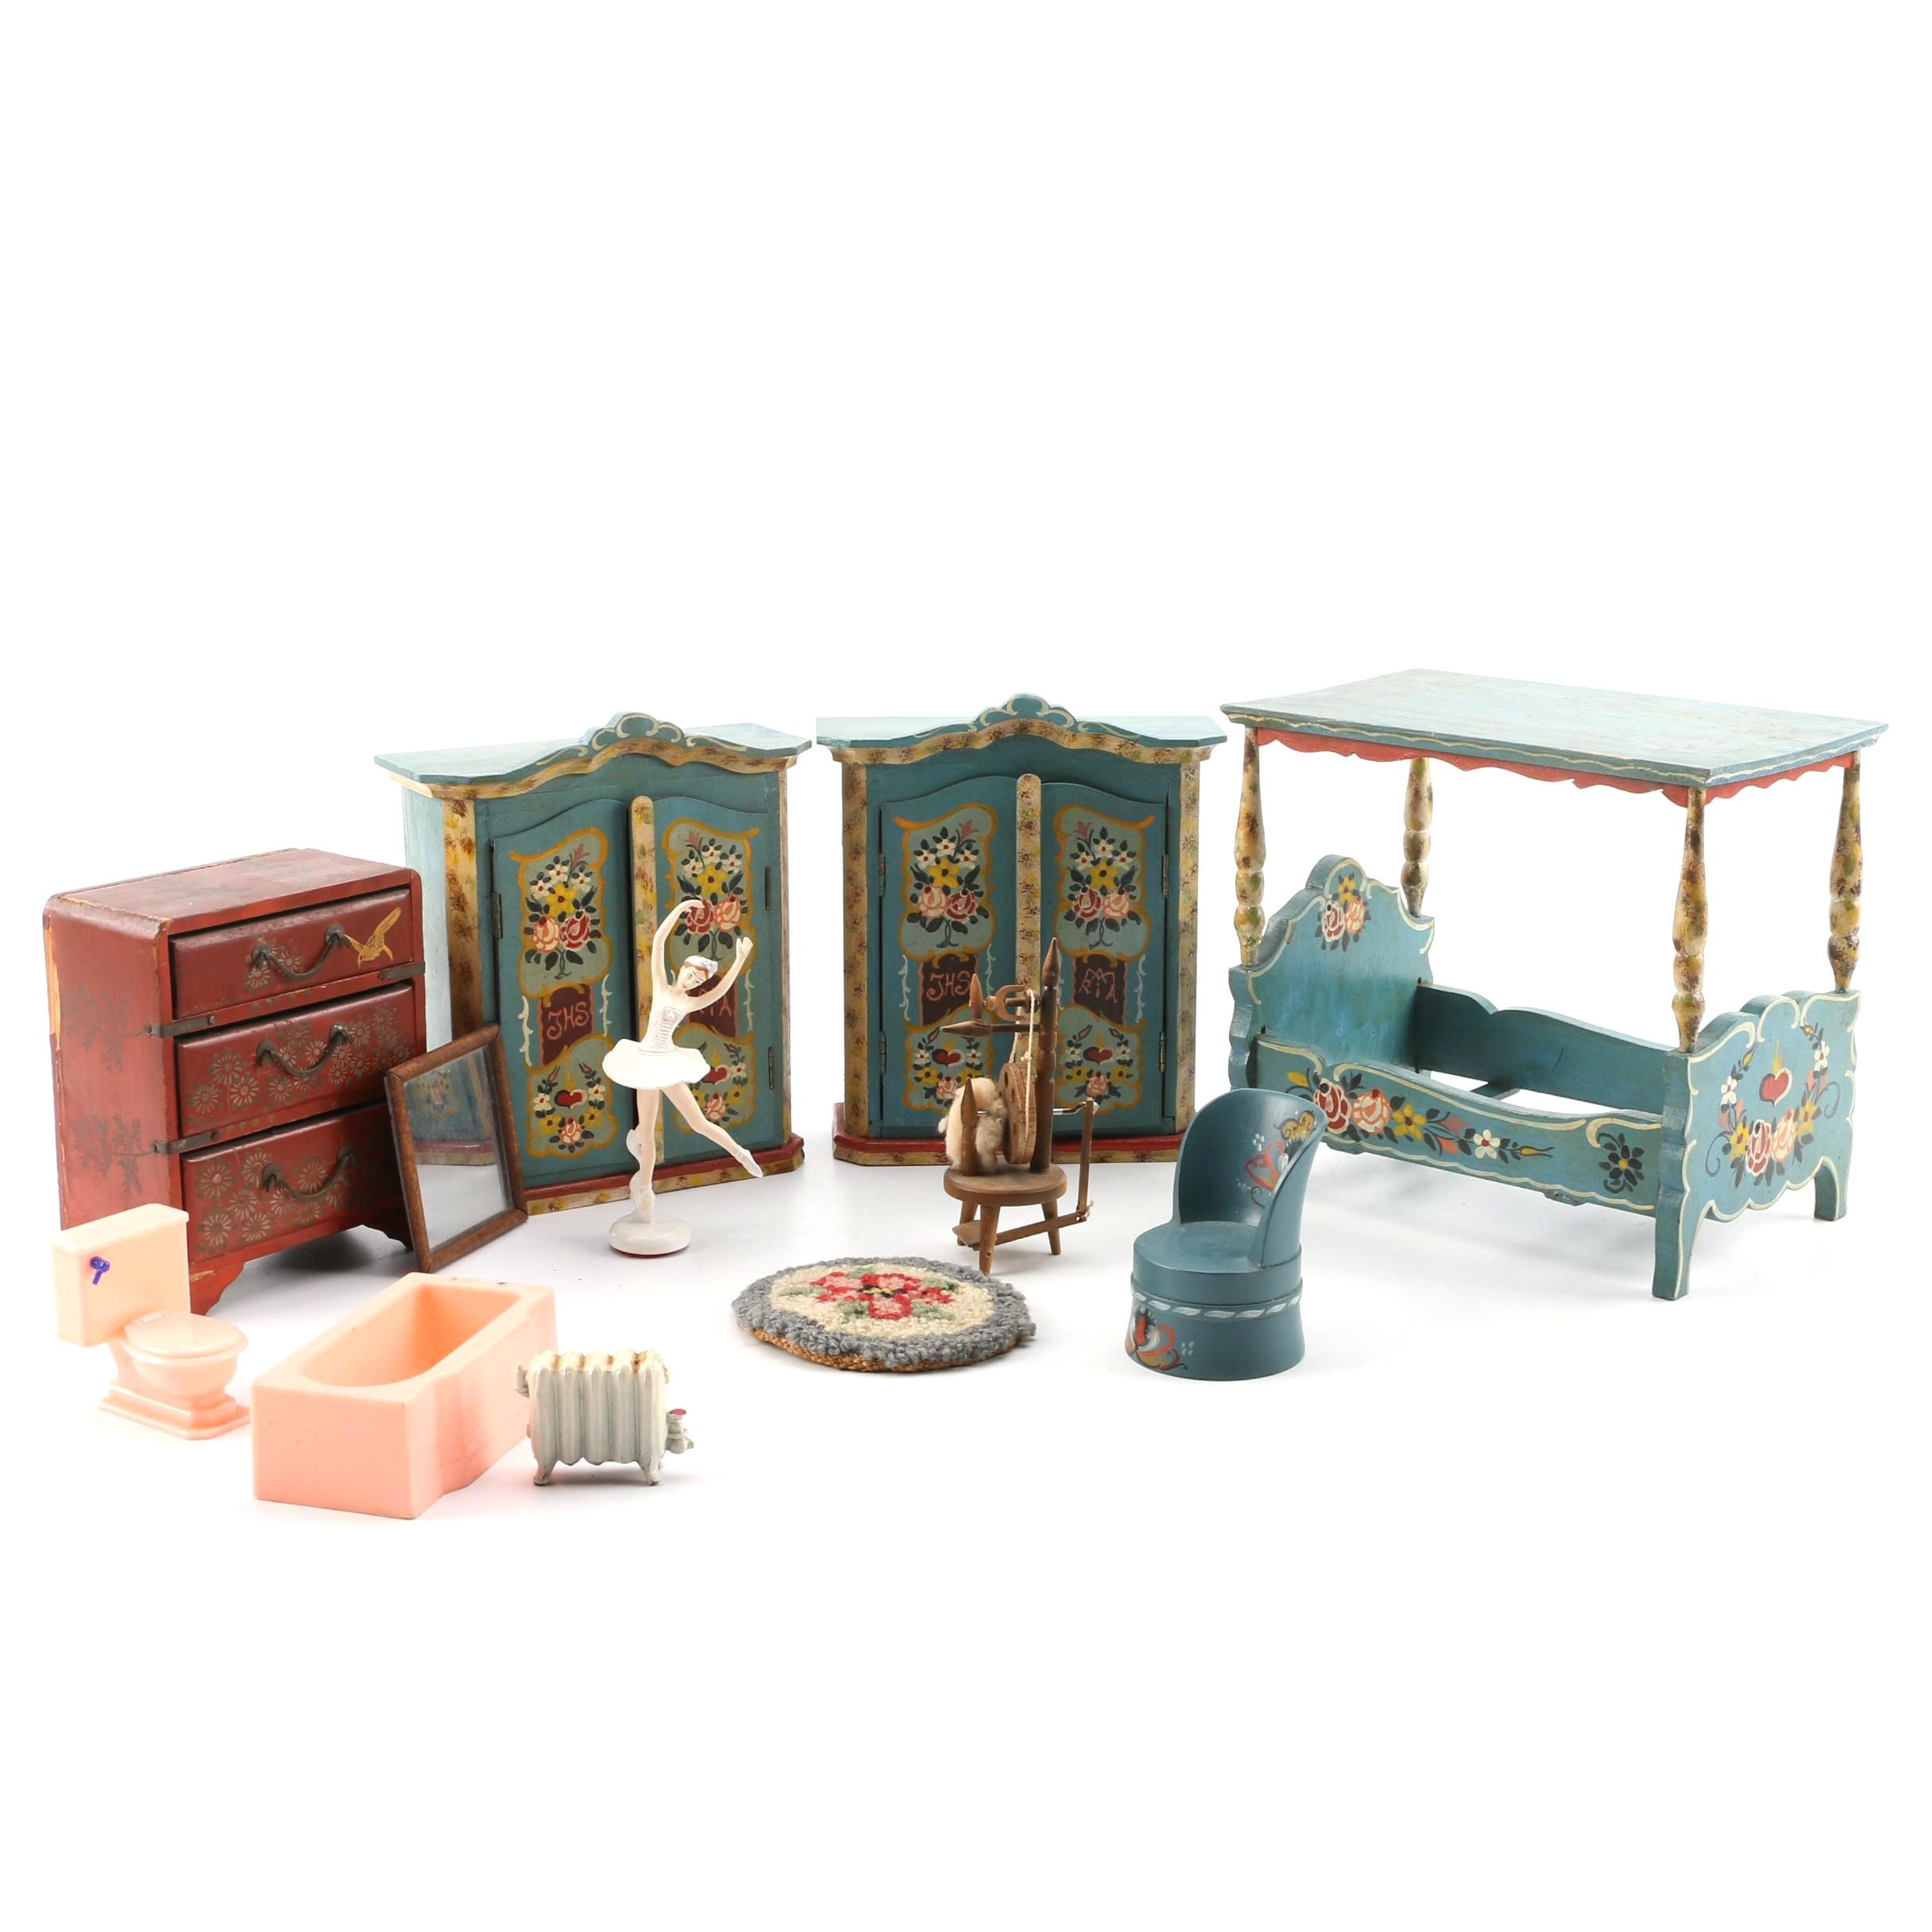 Vintage Hand-Painted Dollhouse Furniture and Renwal Bath Set